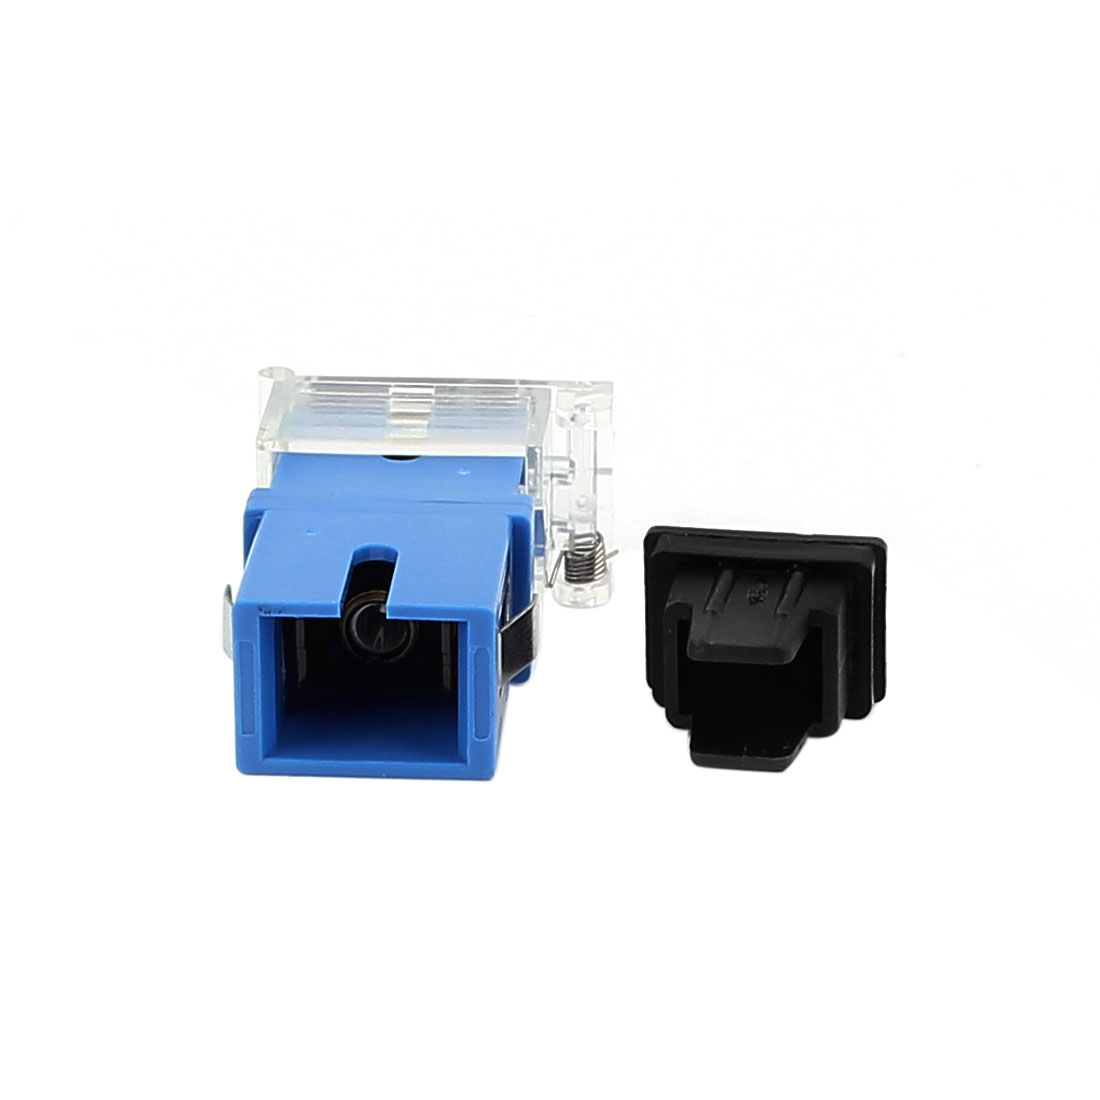 SM SC/APC Simplex Fibre Coupler Flange Optical Fiber Adapter w Anti-dust Cap Blue